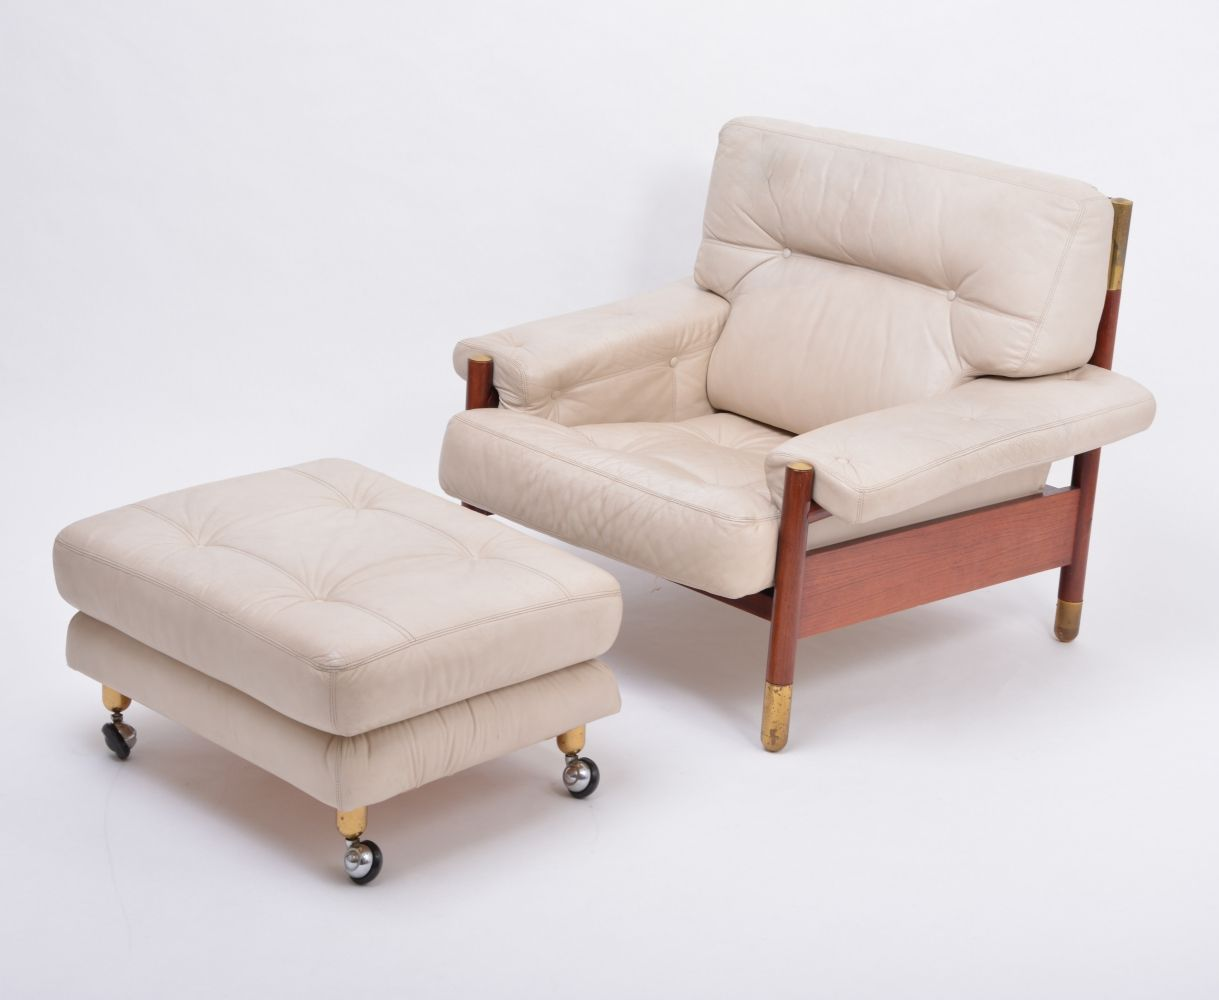 For sale MidCentury Modern lounge chair with Ottoman